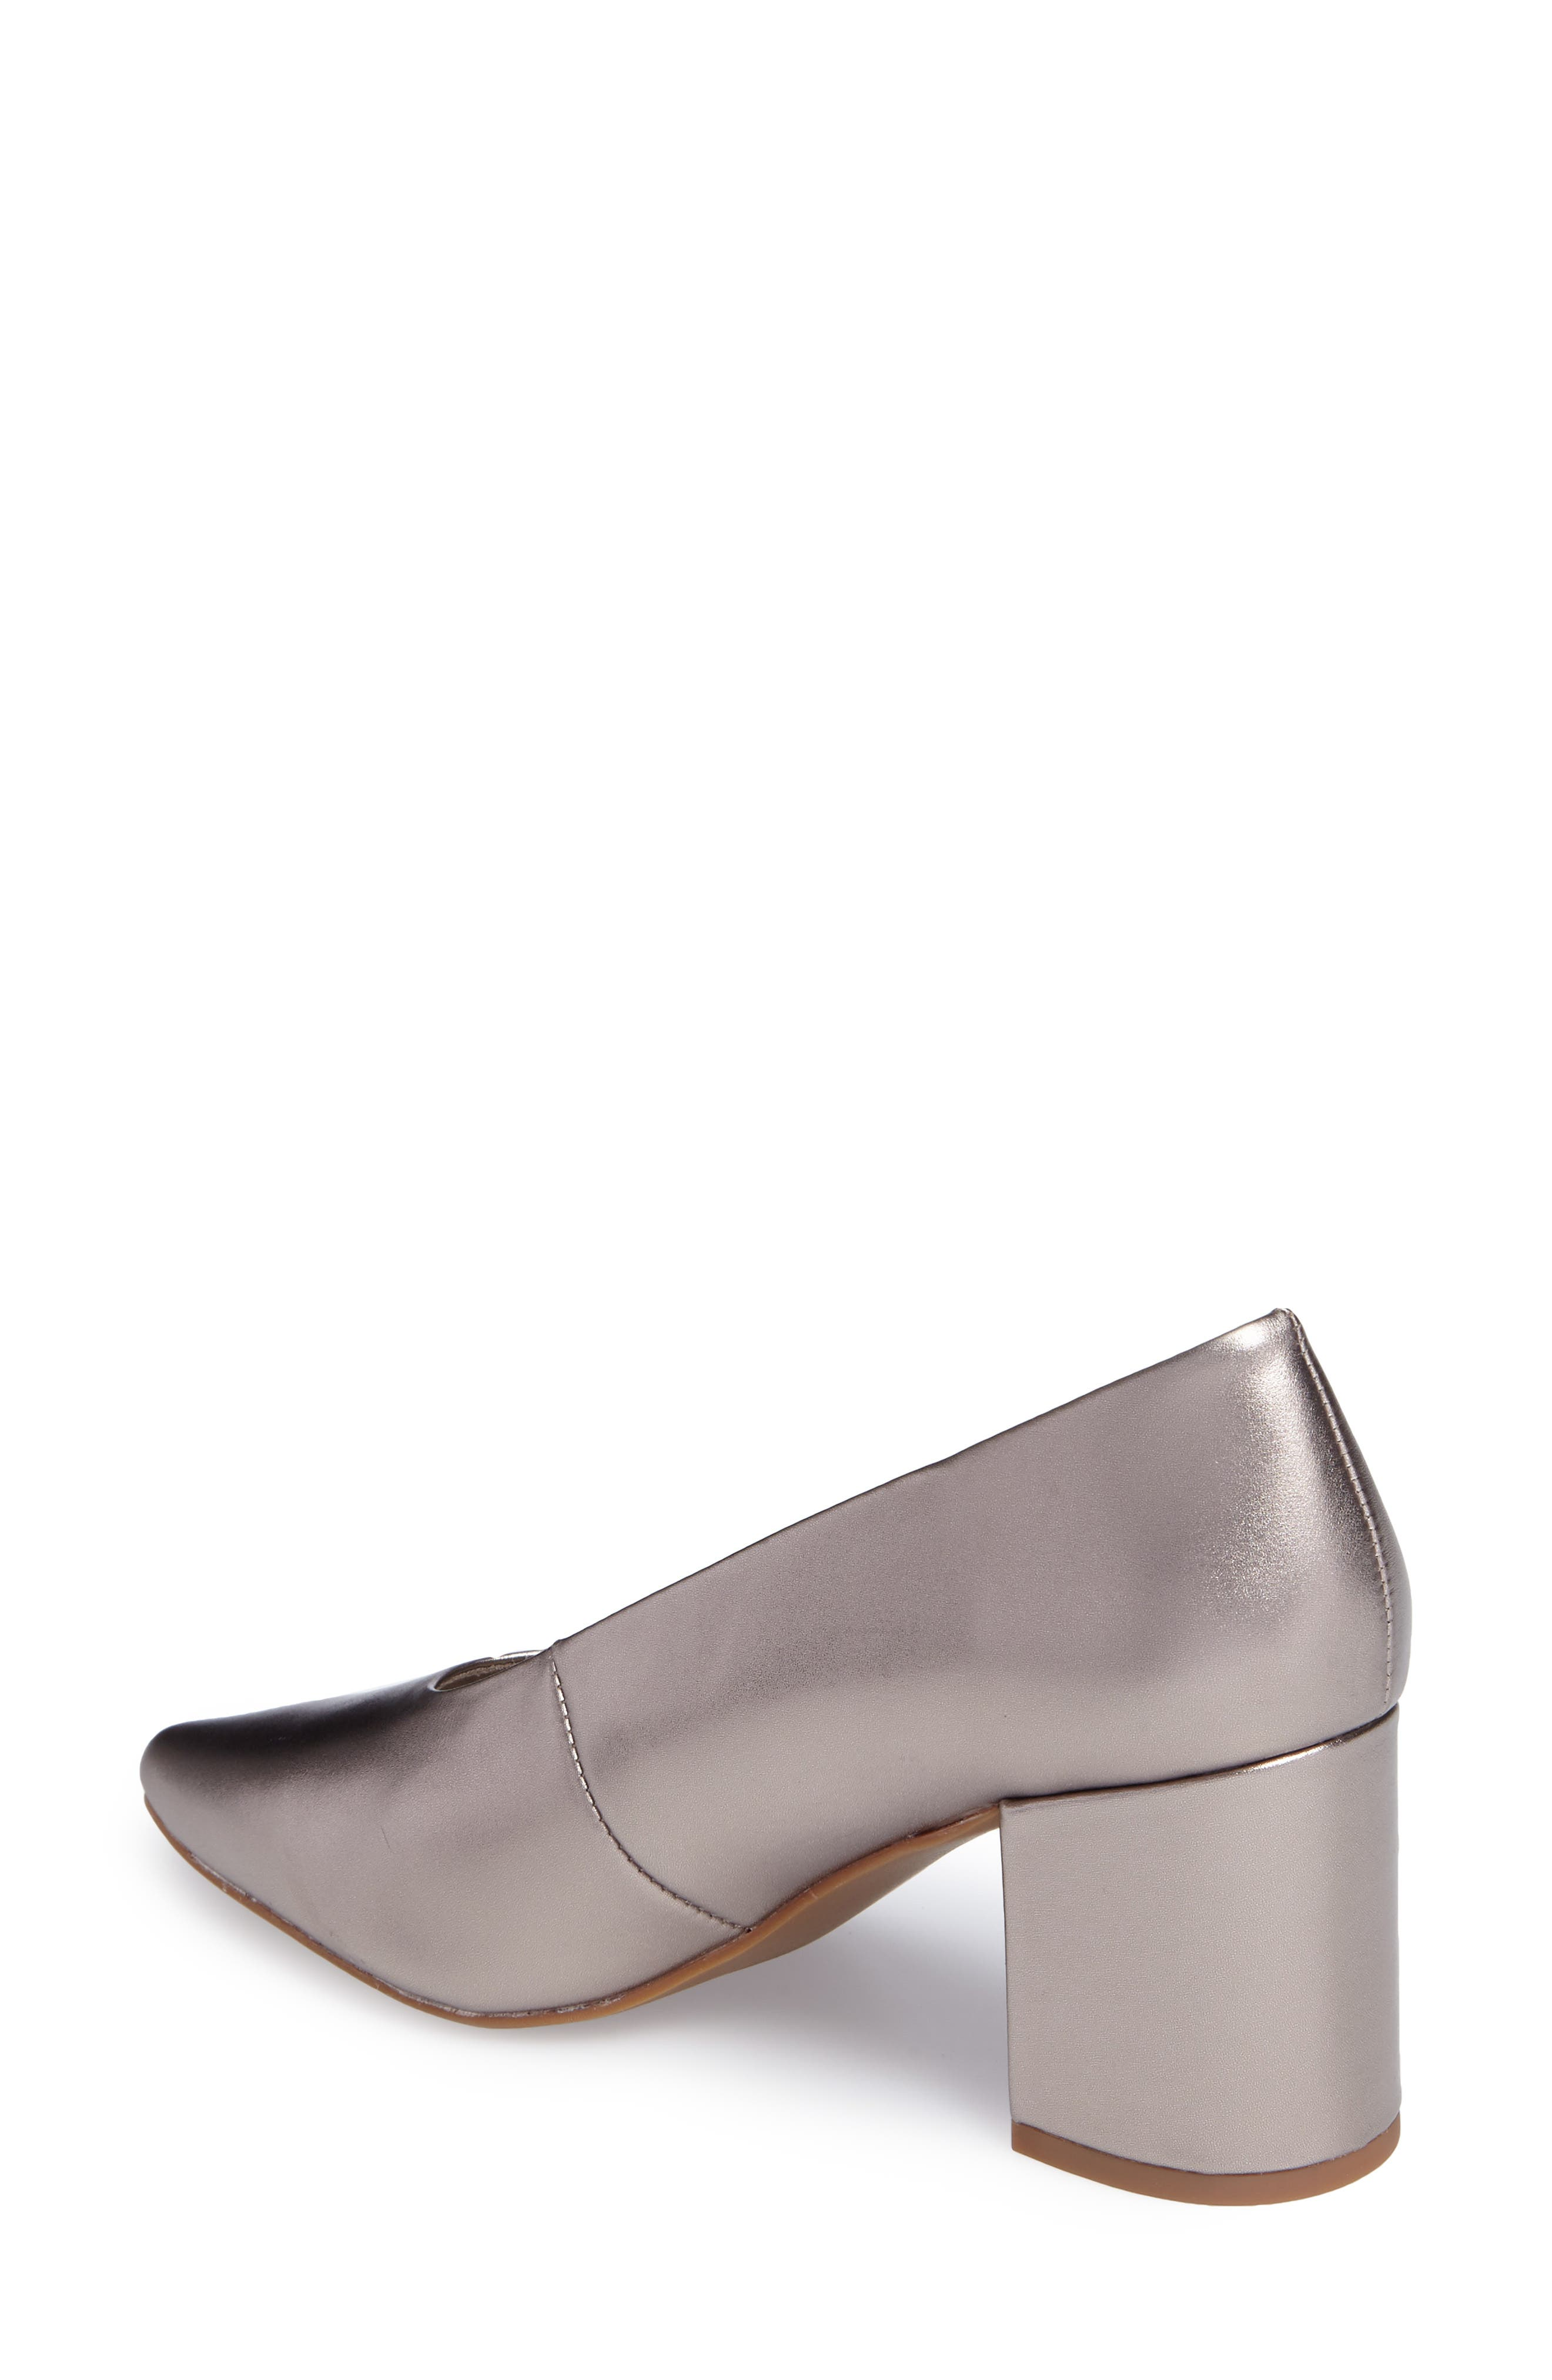 Rehearse Pointy Toe Pump,                             Alternate thumbnail 6, color,